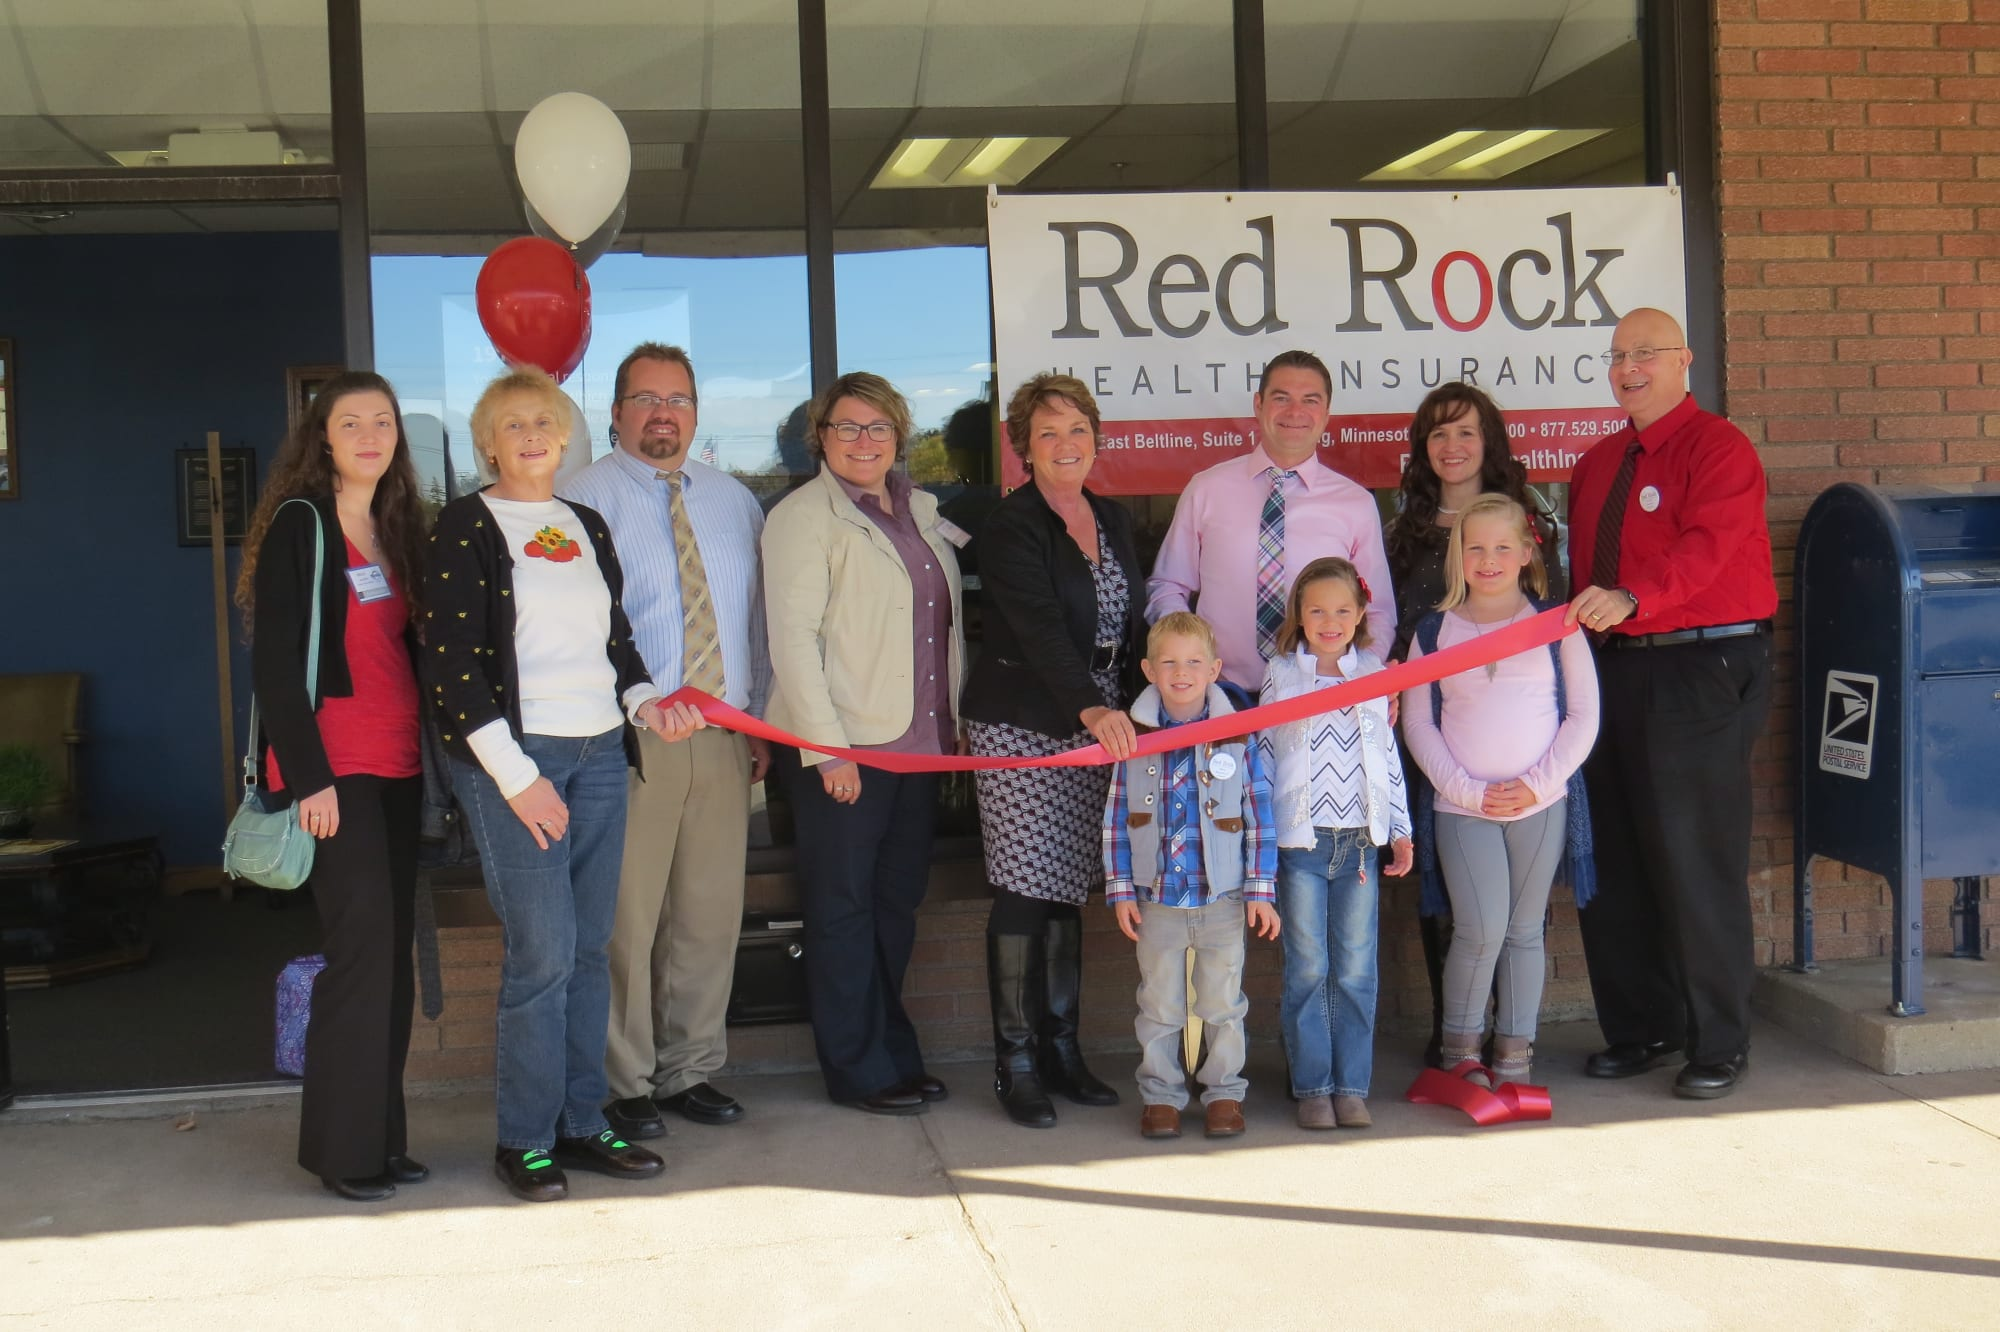 Red Rock Health Insurance - New Business